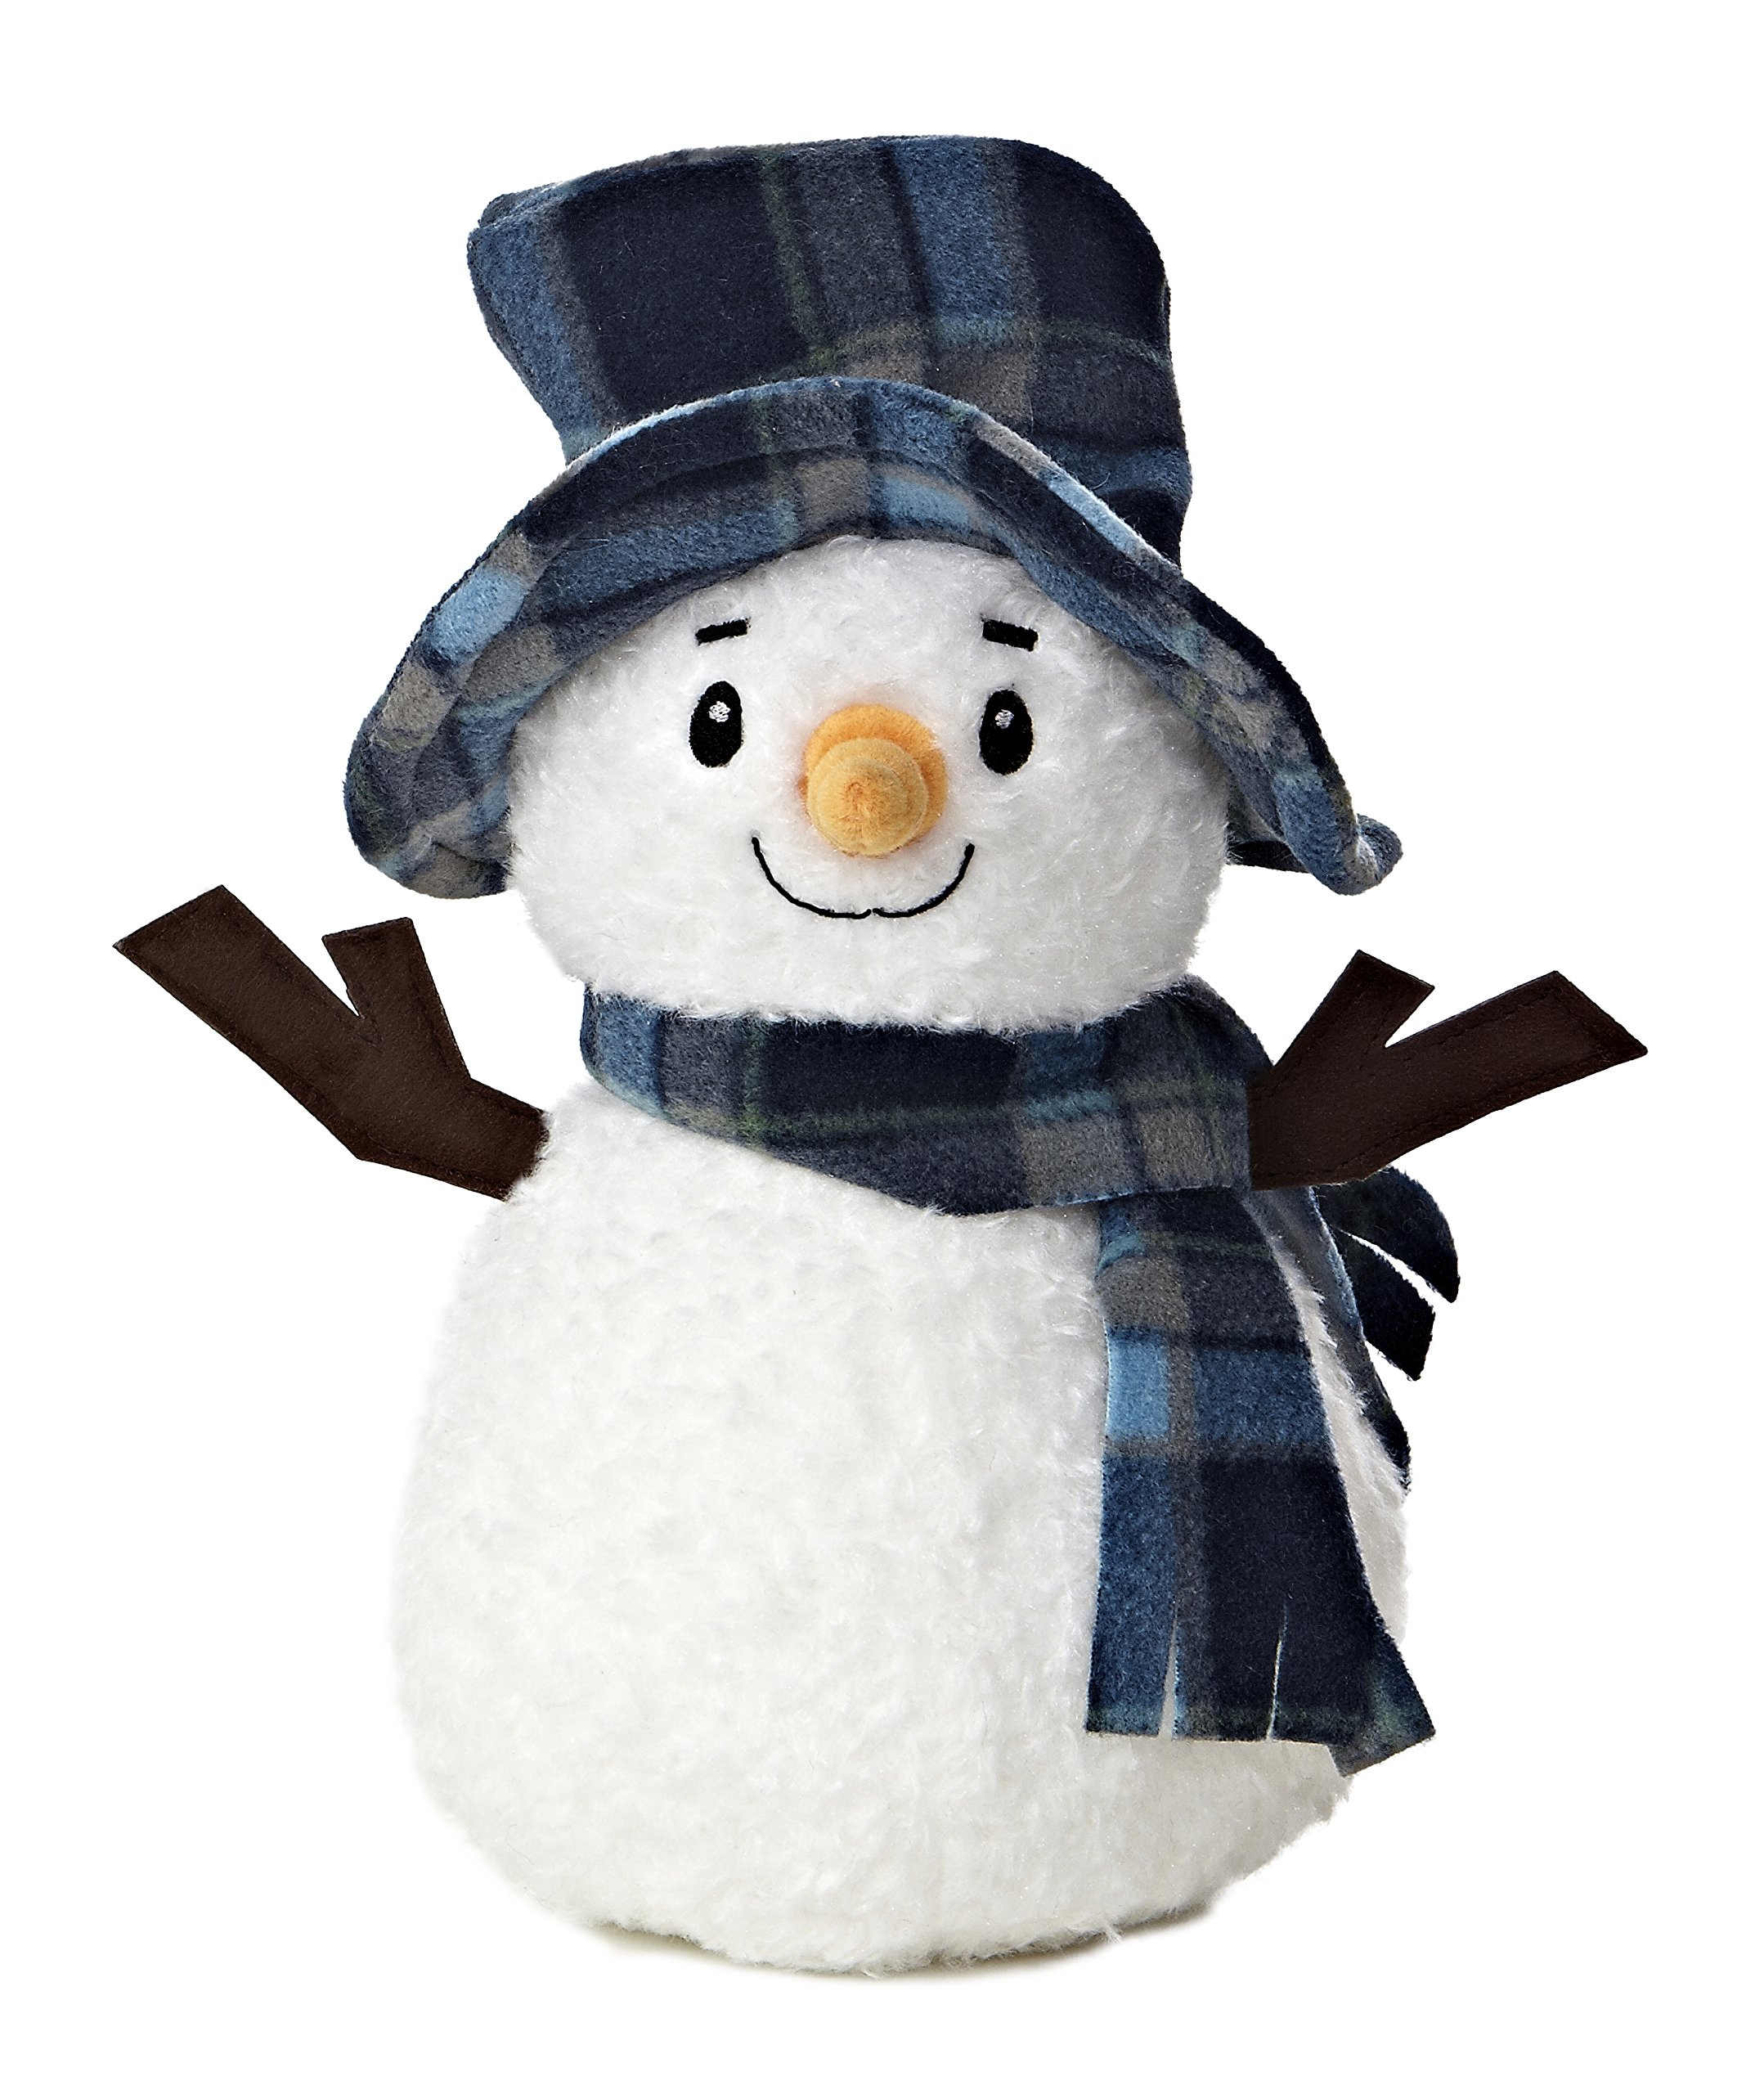 Image of Adorable Snowman Plush Toy